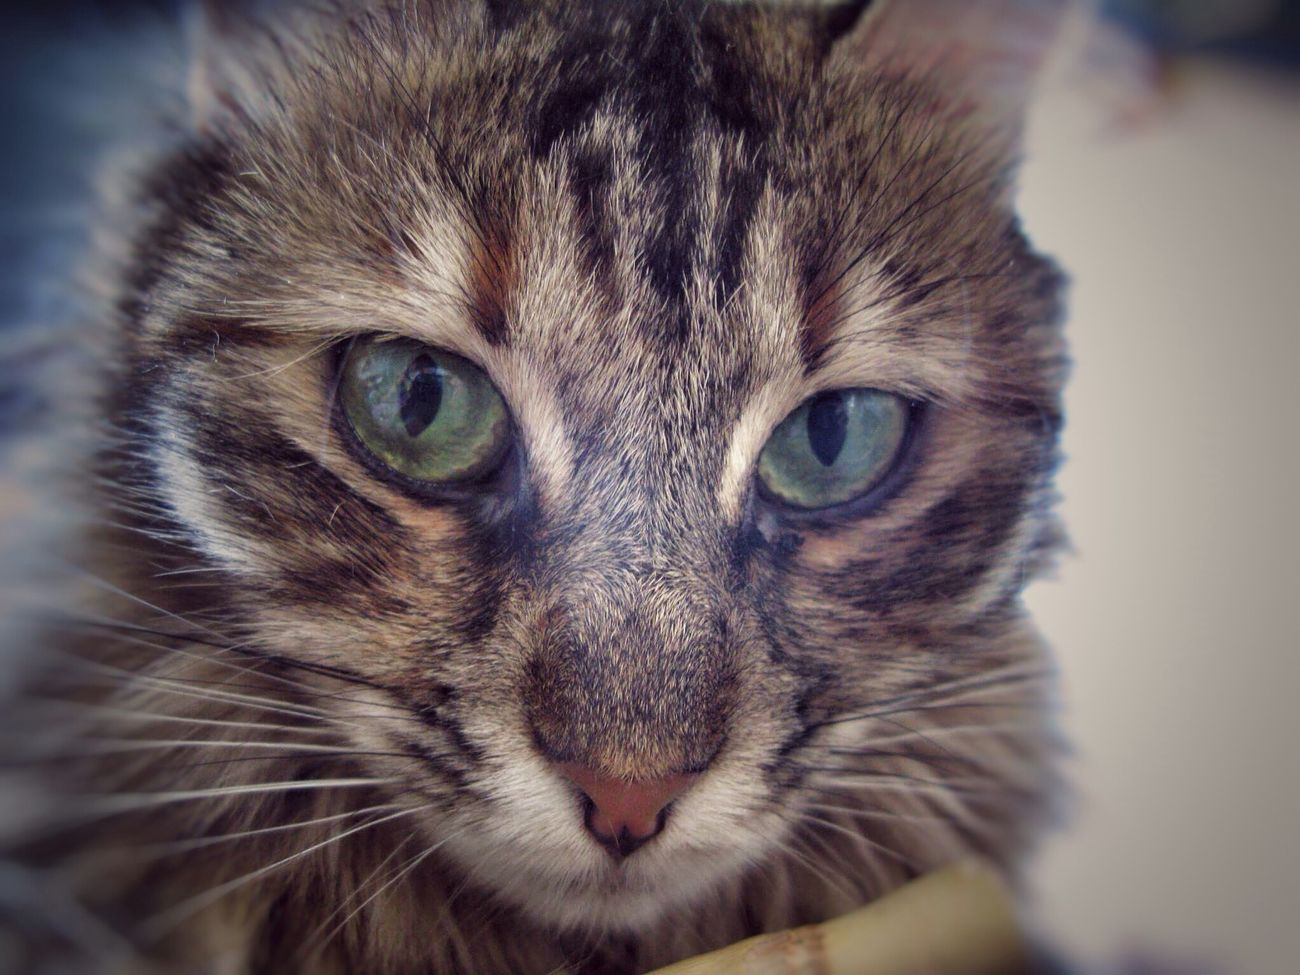 Boo Looking At Camera Portrait Feline Close-up No People One Animal WildCreature Wilderness Intothewild Photooftheday Mycat Photography Photo Beauty Inlove Nature Animal Love Eyes Eyes Are Soul Reflection MyGIRL Photo Shoot